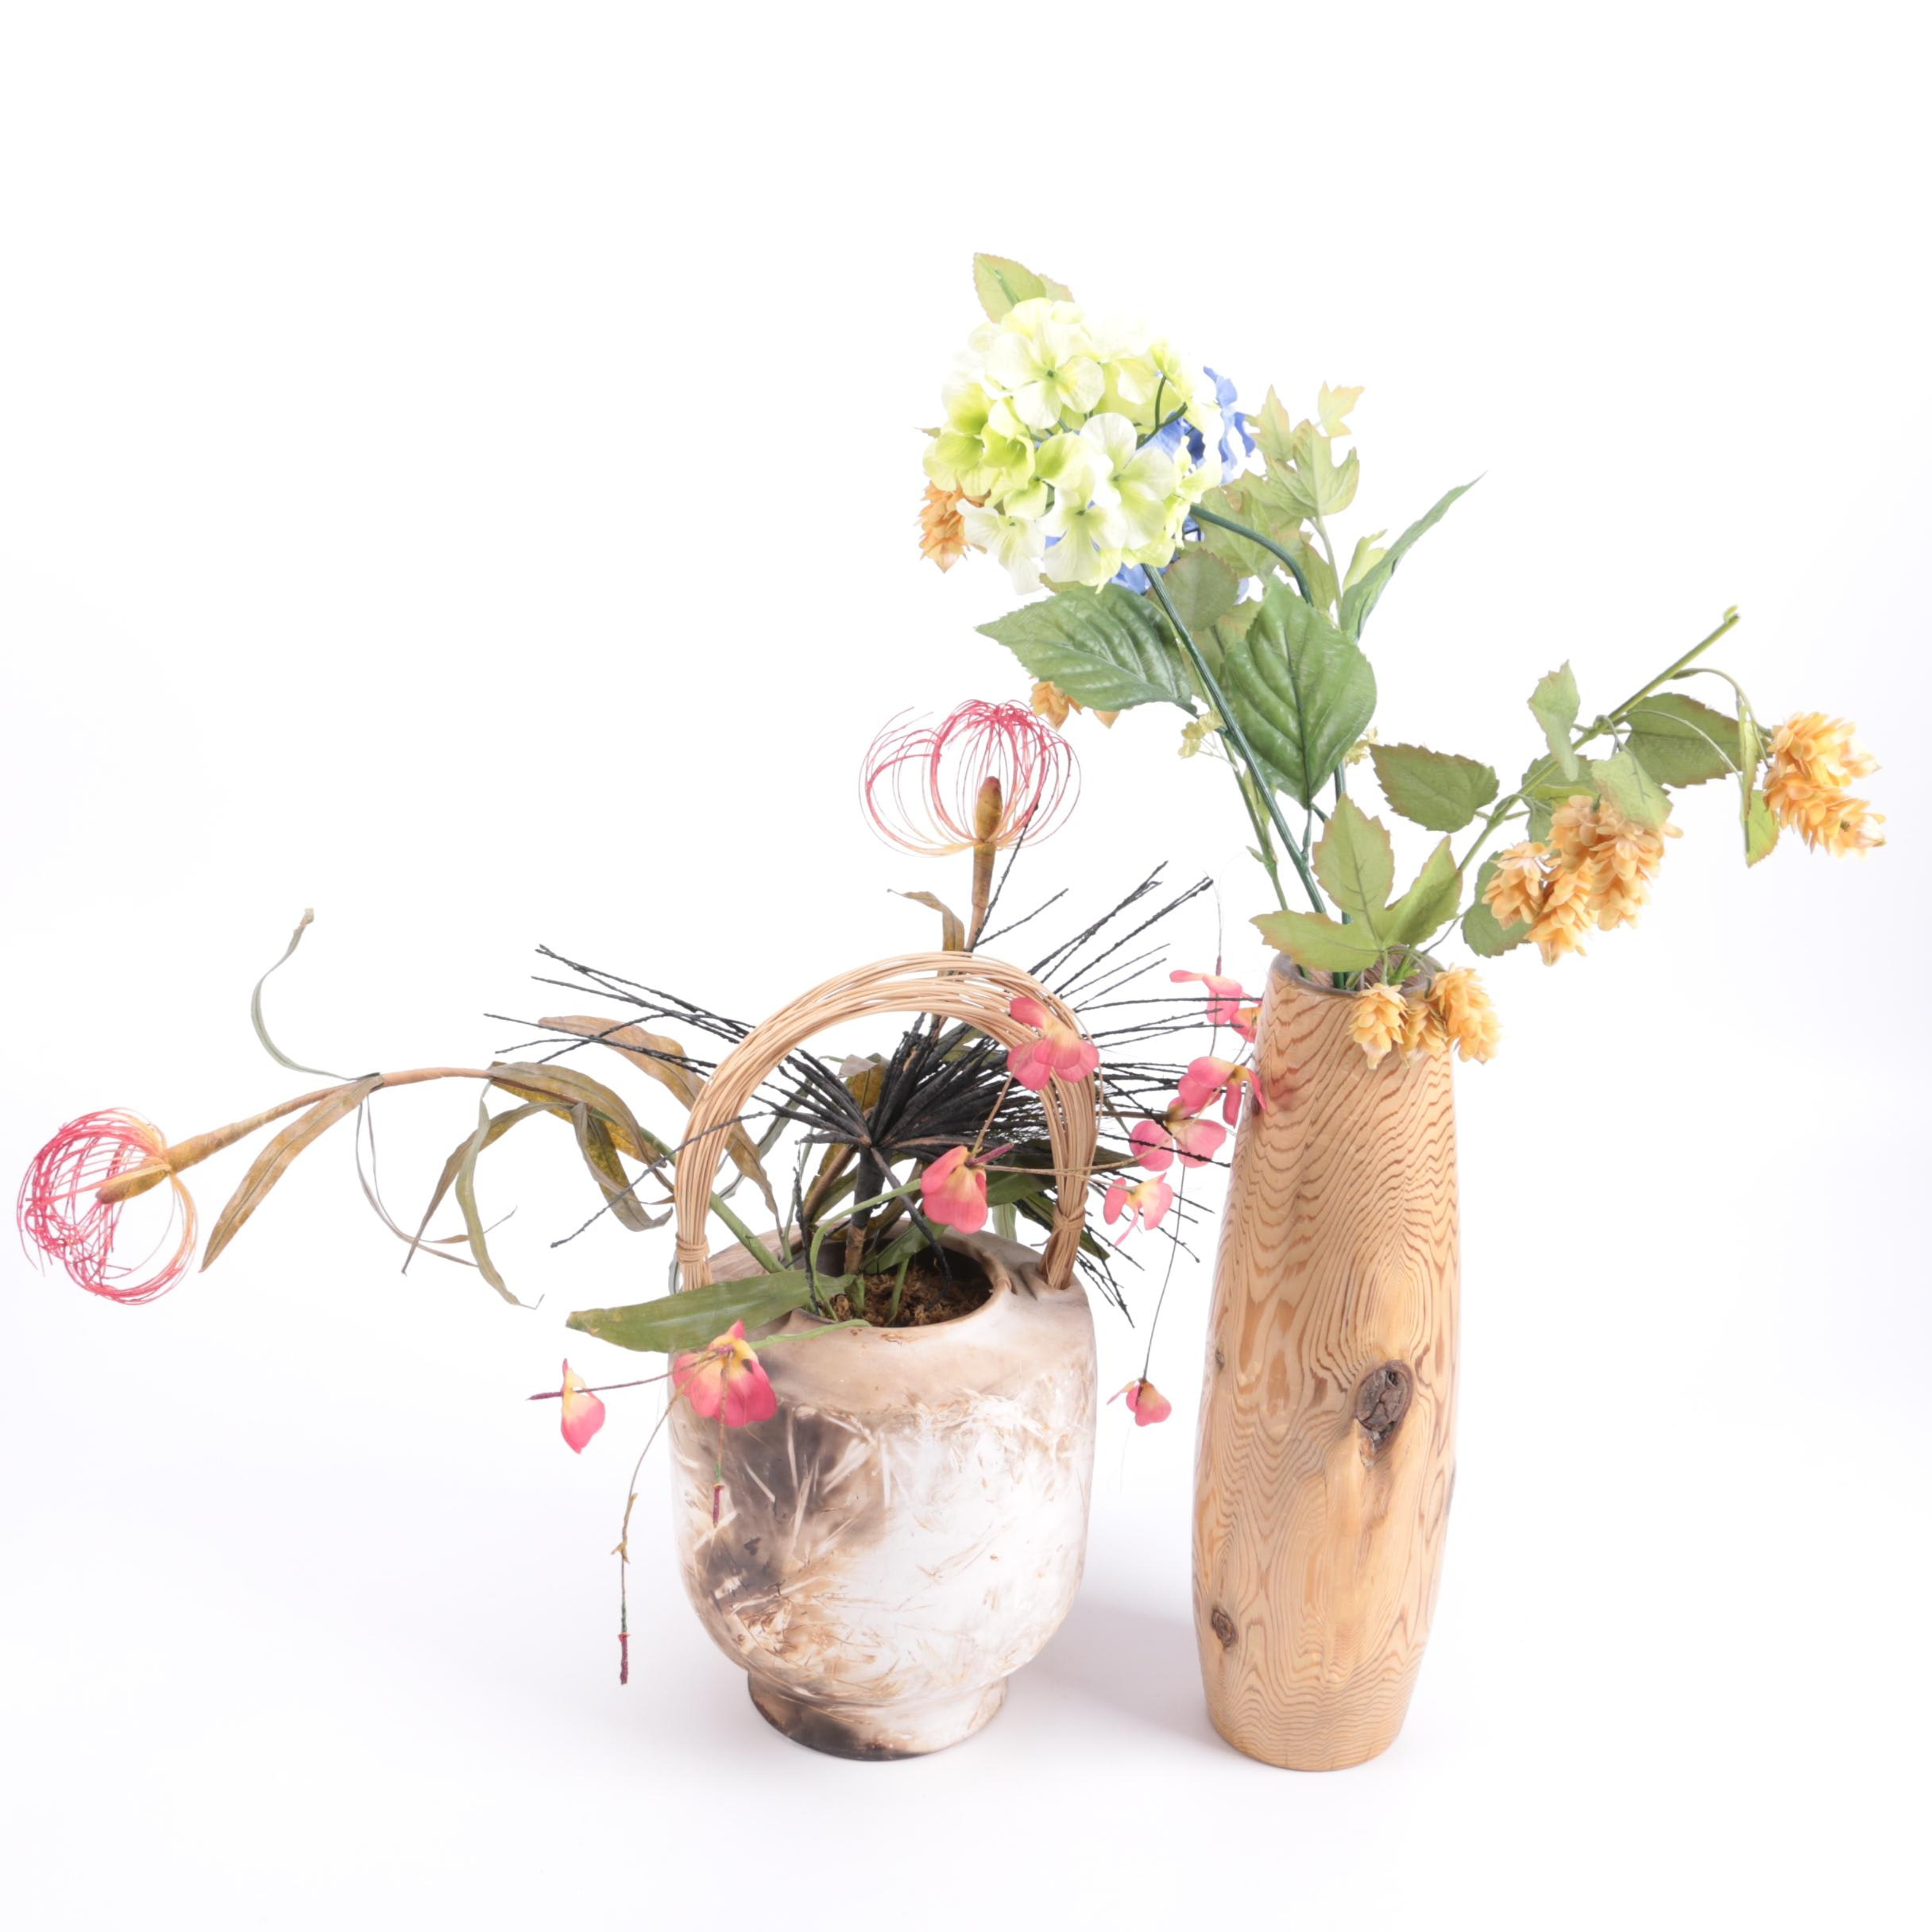 Pit Fired and Turned Wood Vases With Faux Flowers